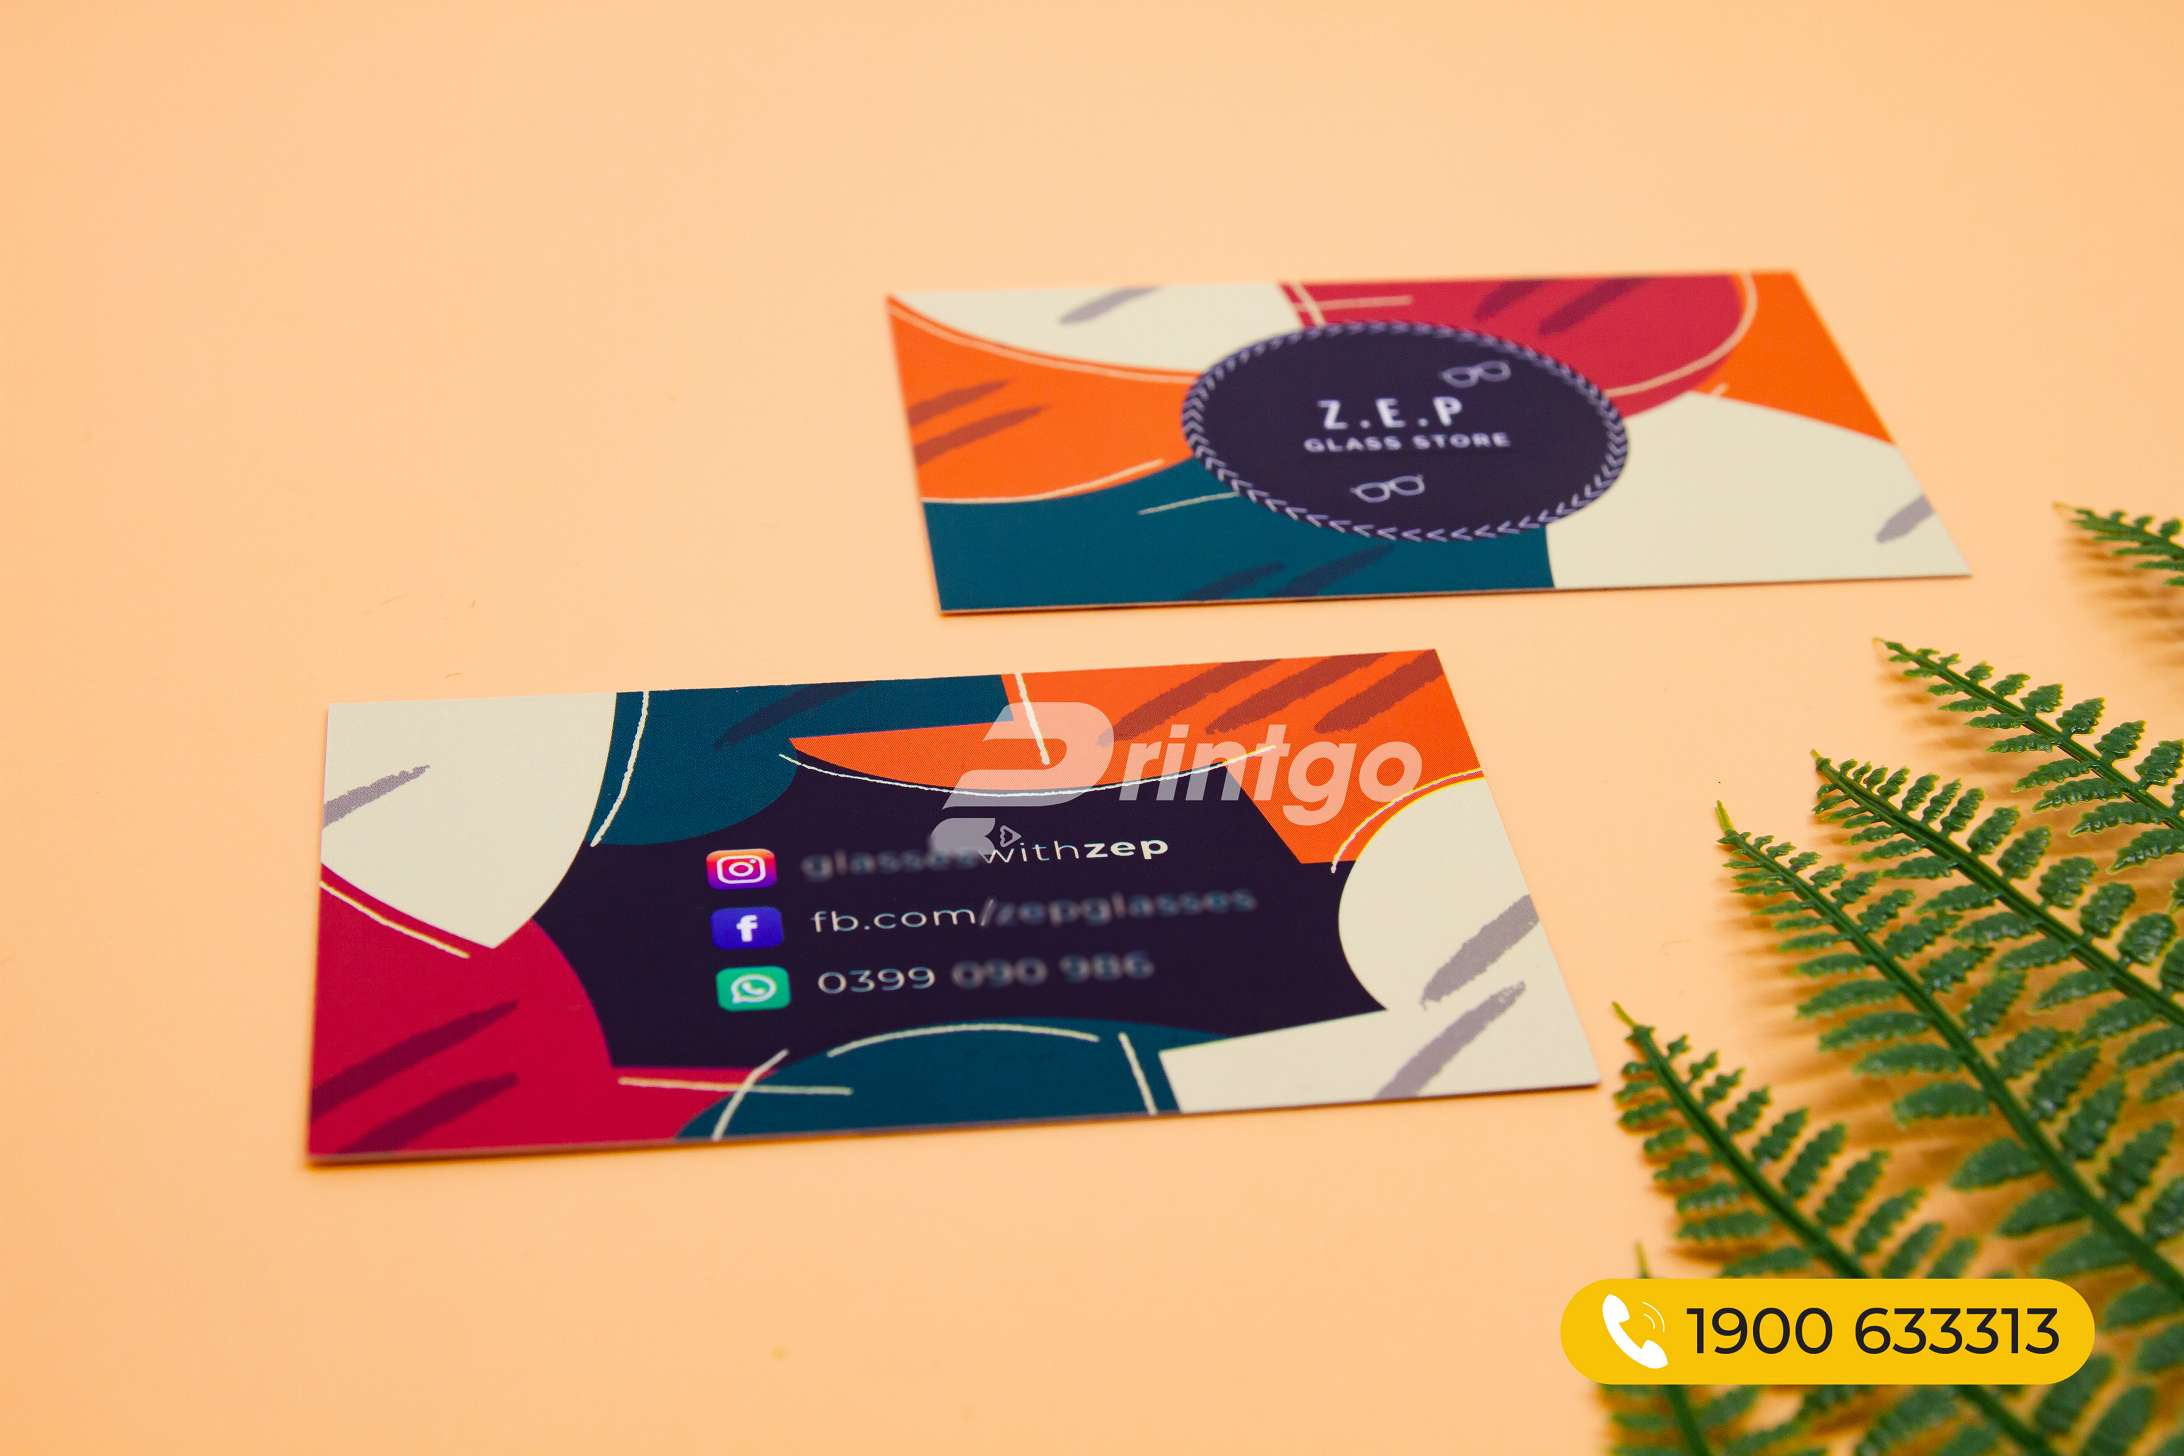 Name-card-PG-NC-000012